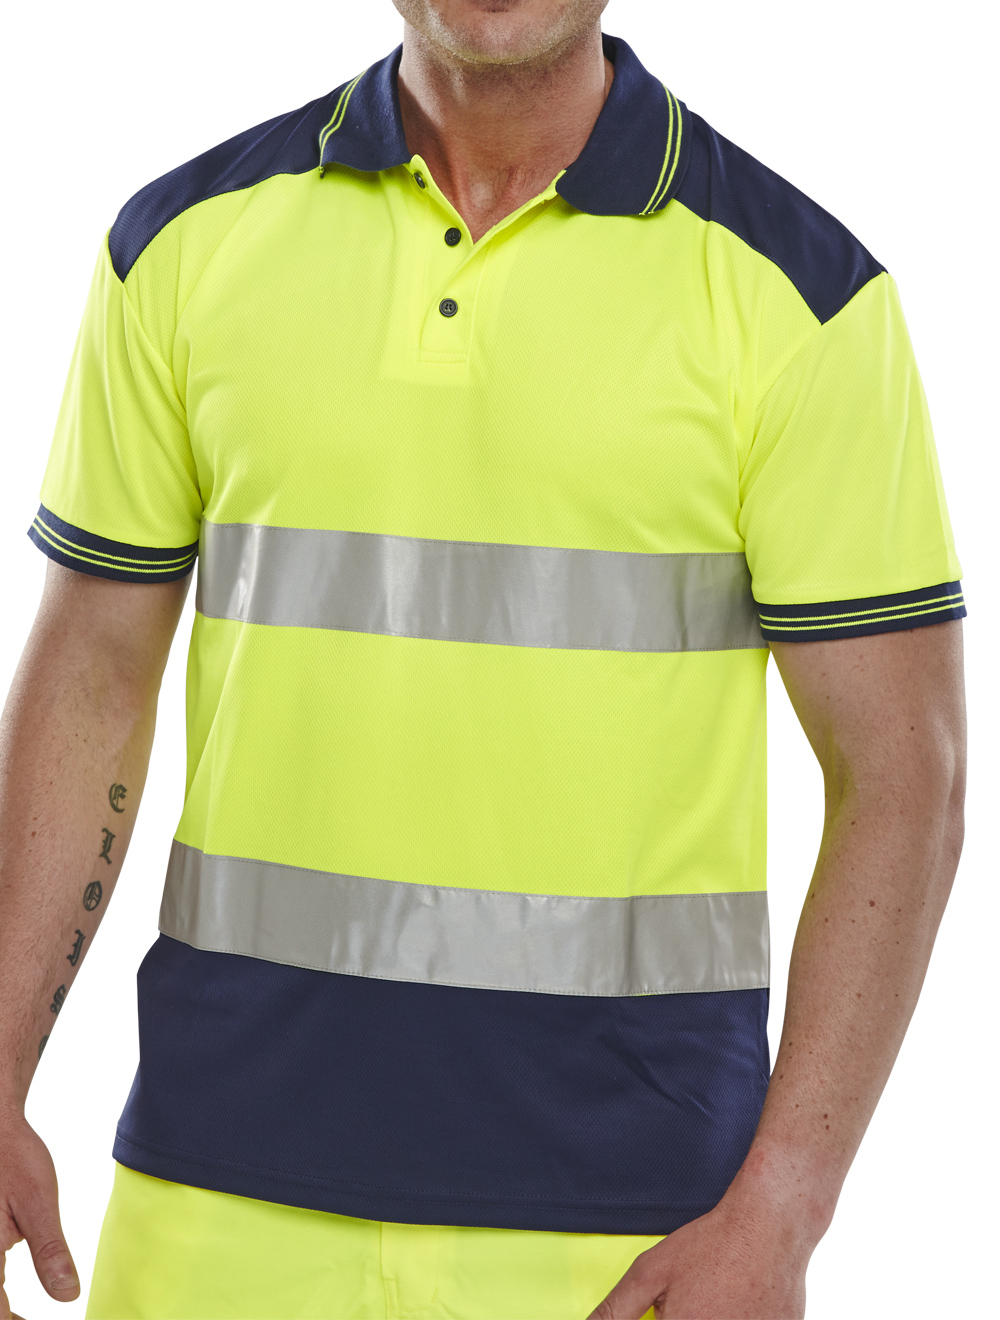 Cpkstten pk shirt two tone saturn yellow navy for Hi vis t shirt printing